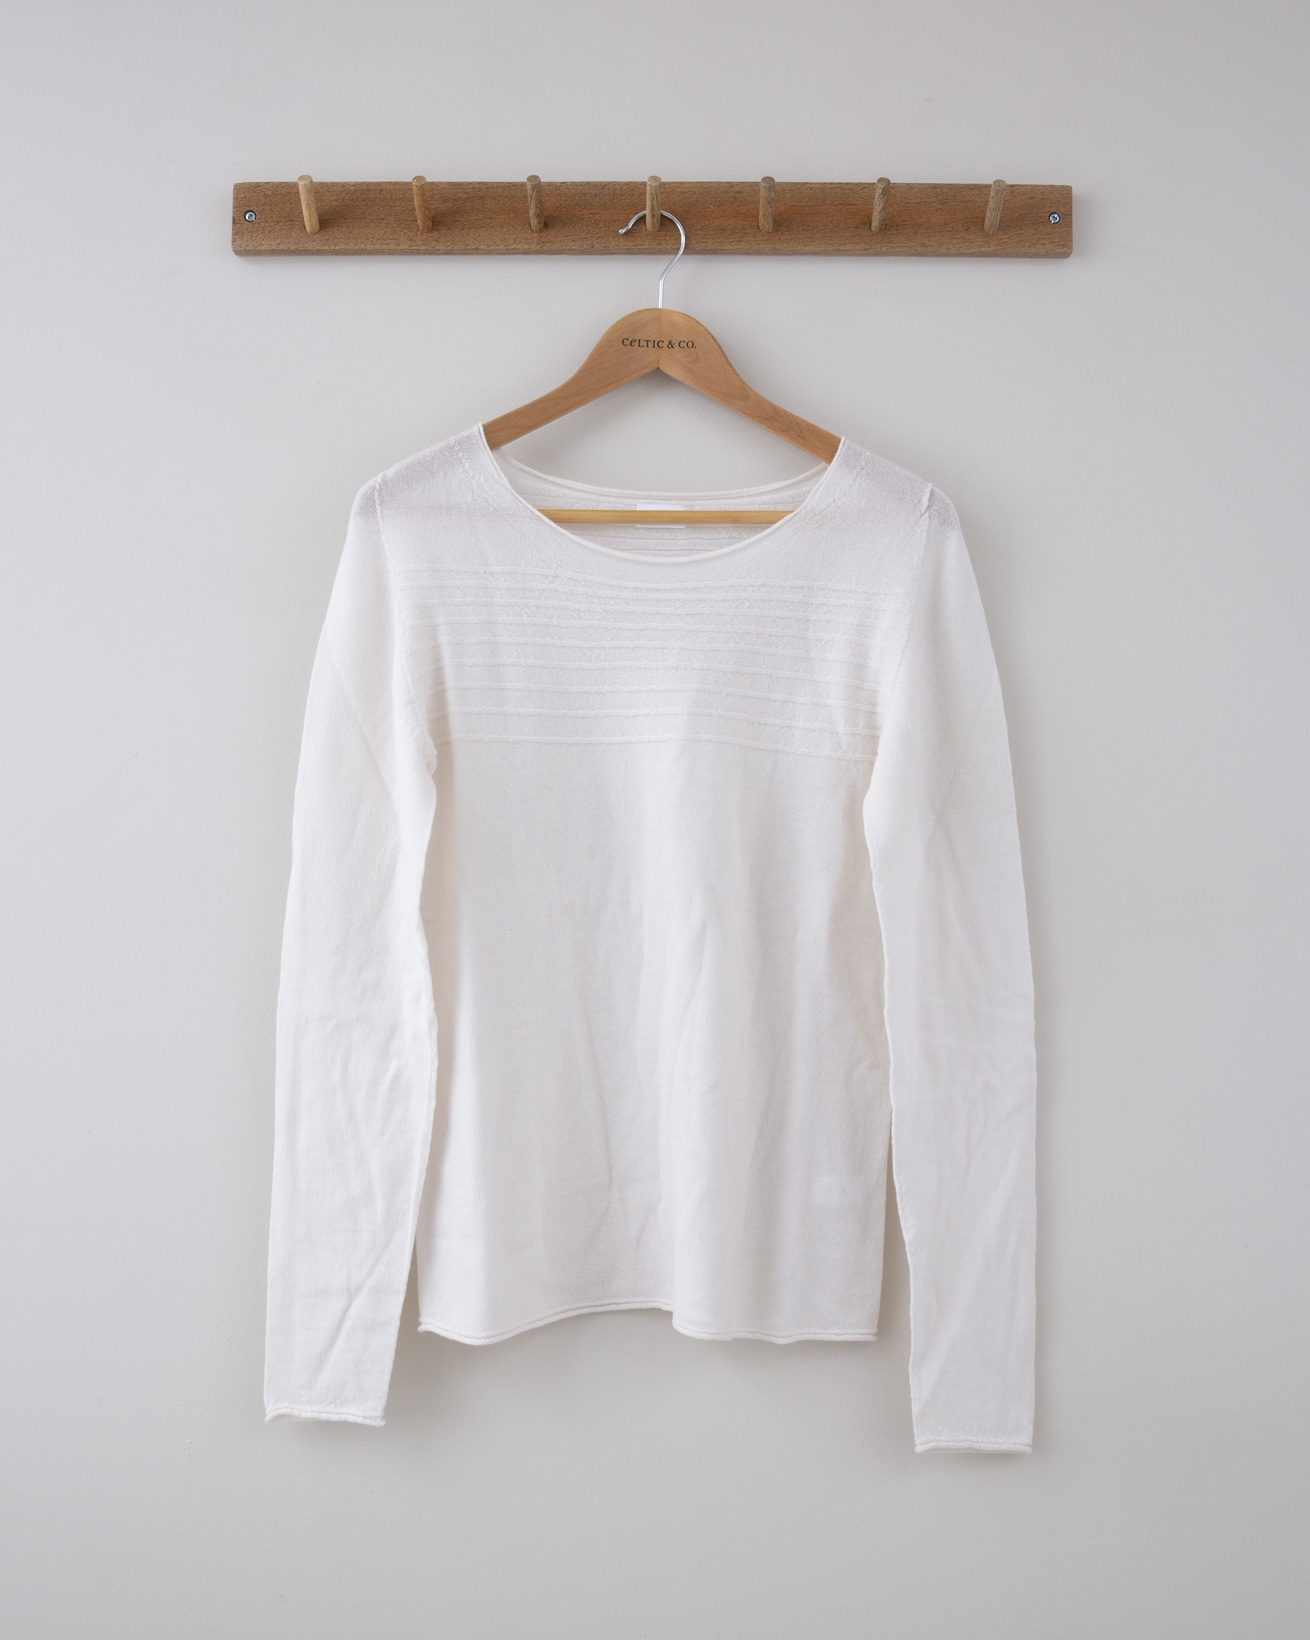 Fine Knit Merino Crew Neck - Small - Winter White Purl Stripe - 1252